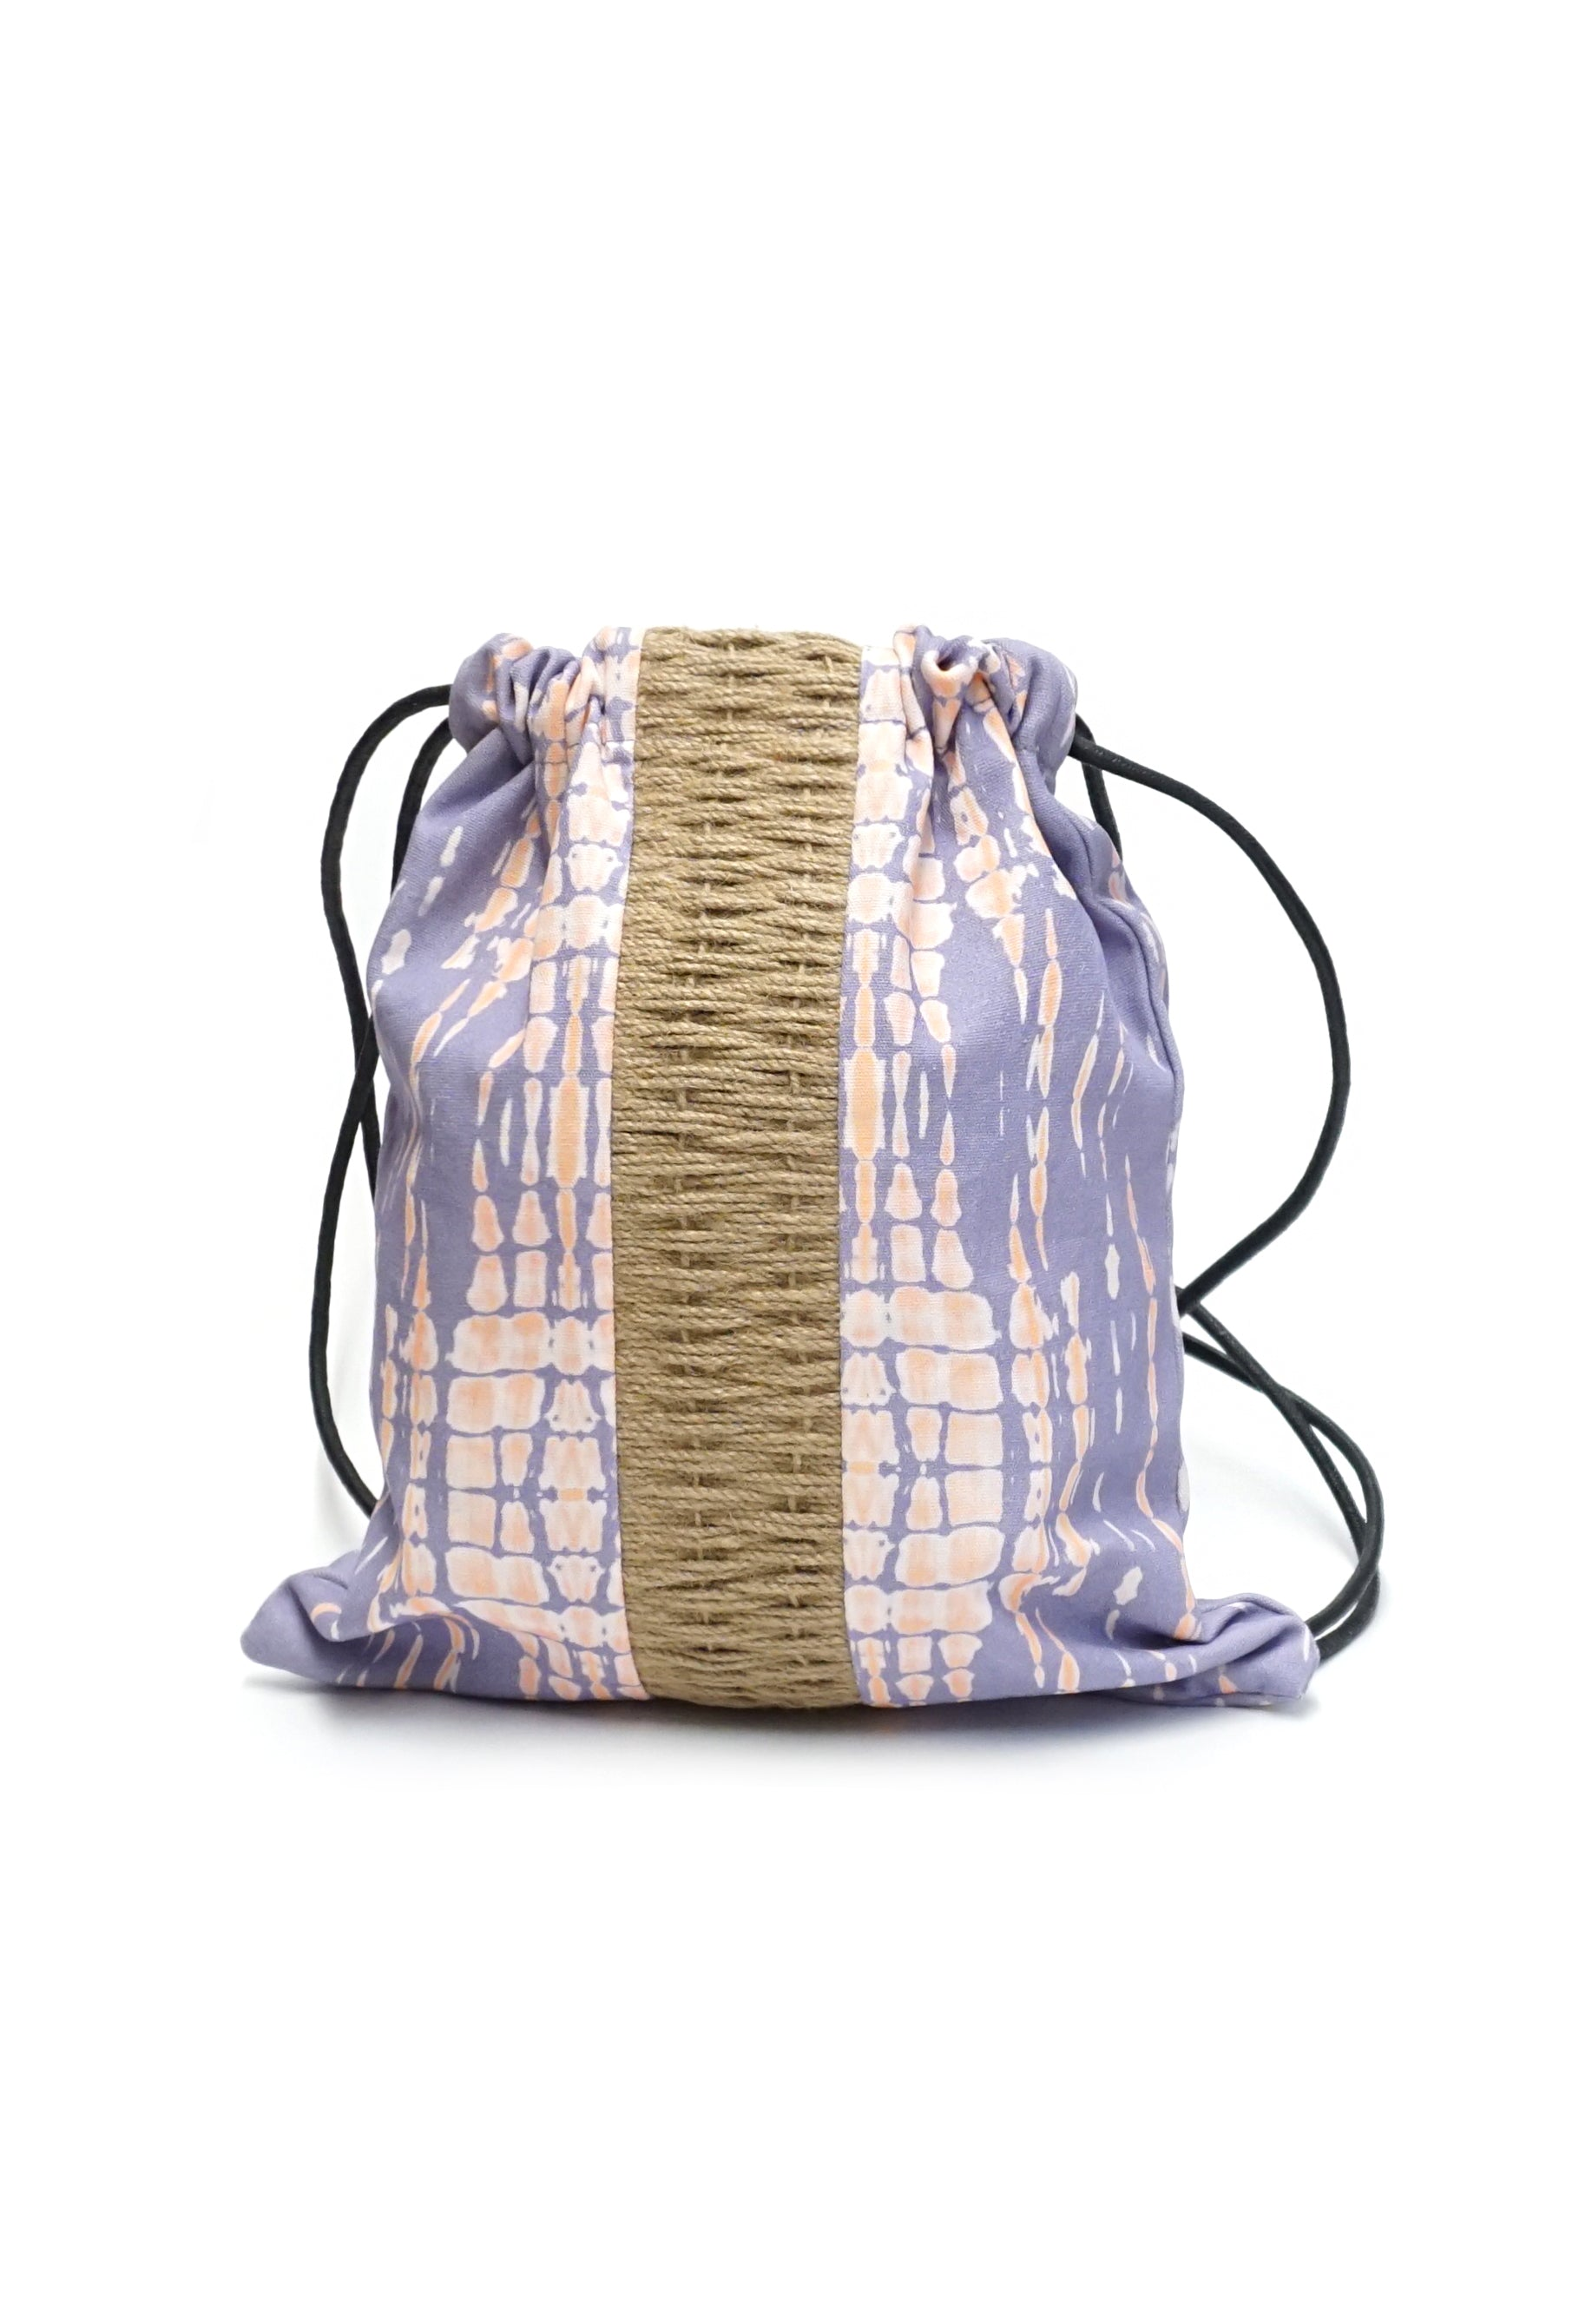 2-Tone Tie Dye Jute String Backpack